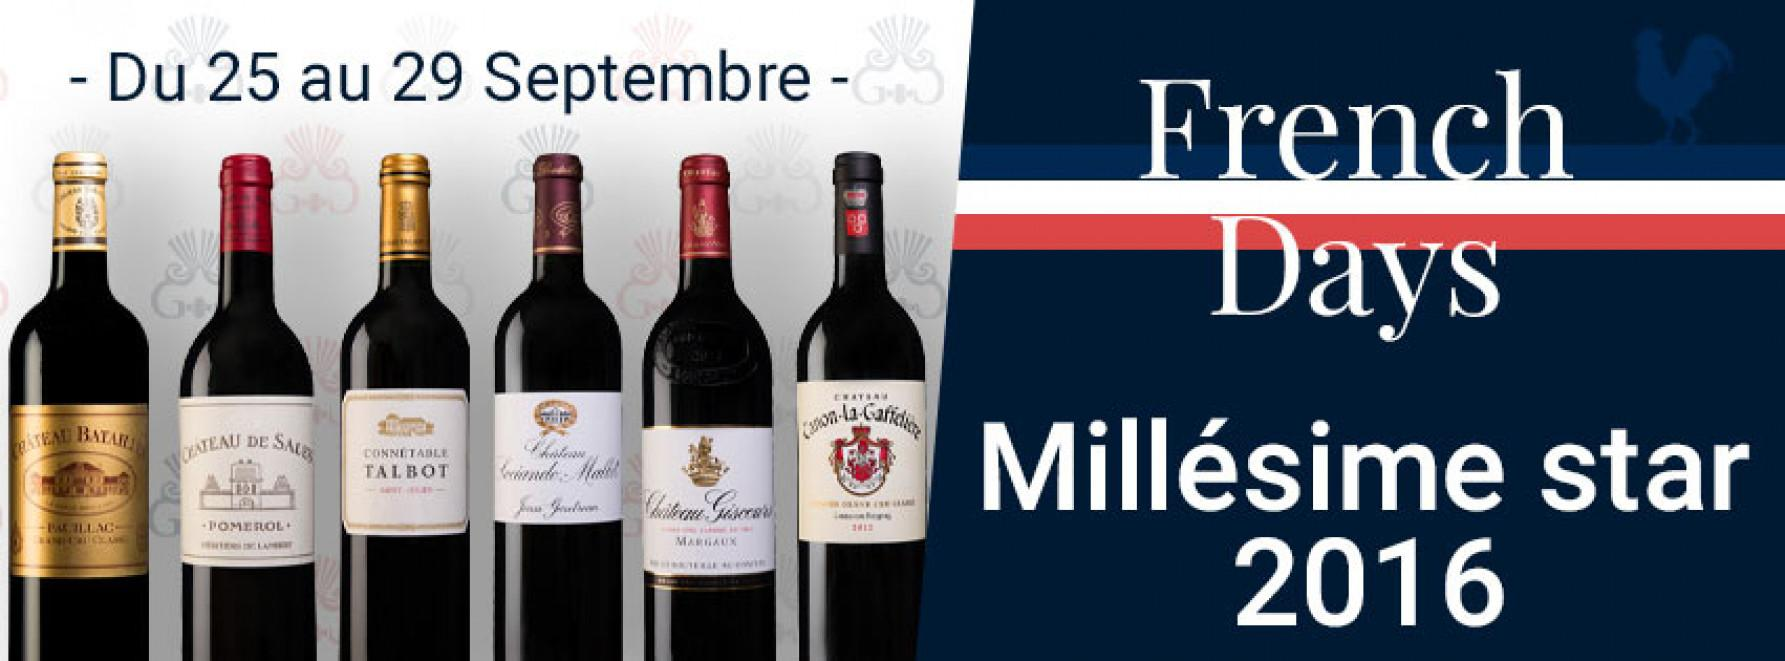 French Days | Millésime star 2016